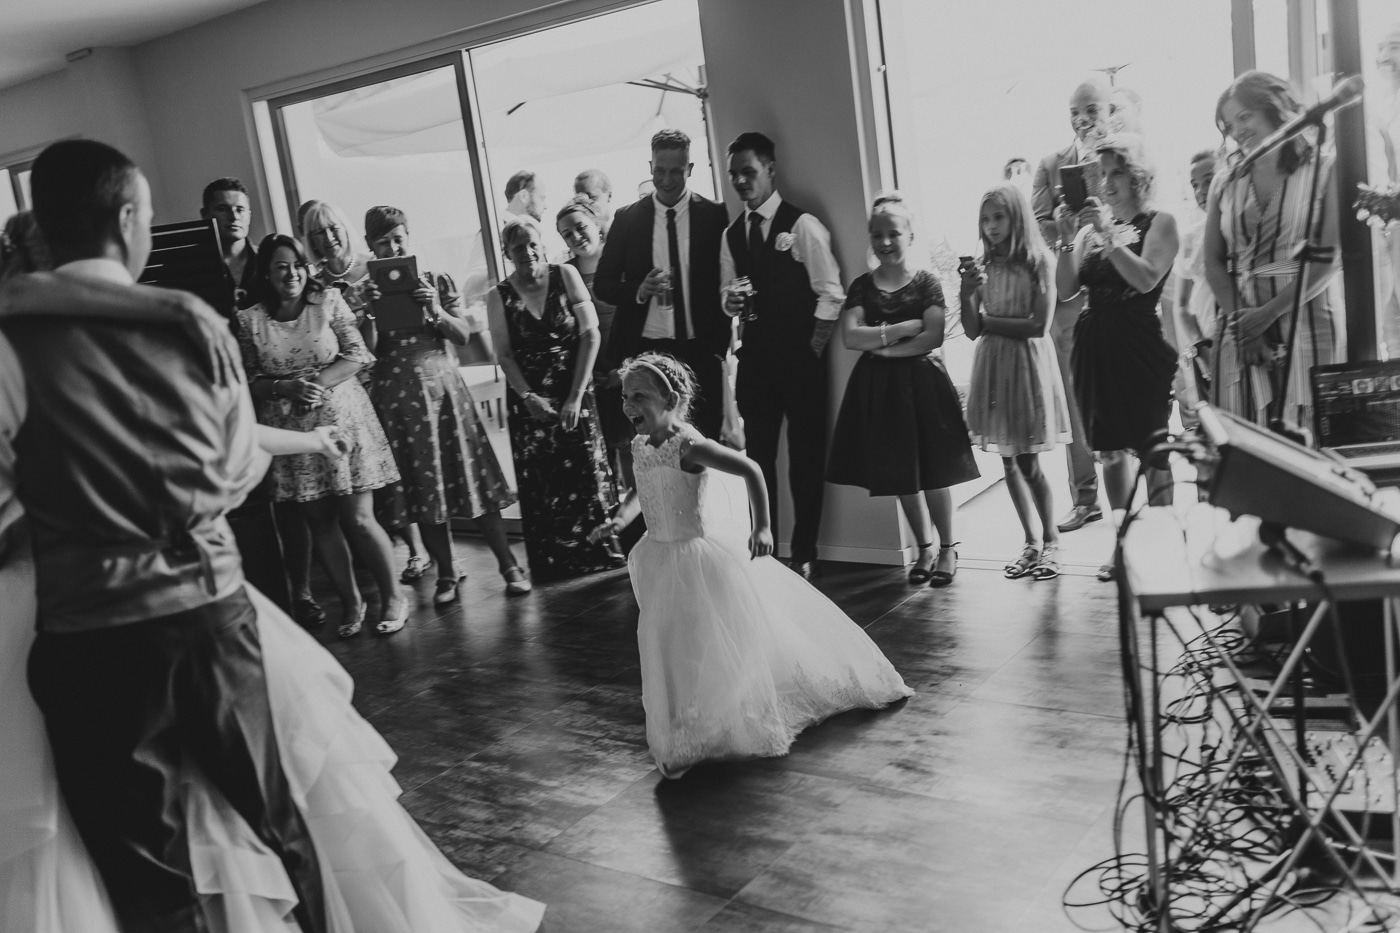 Happy bridesmaid running to meet bride and groom on dance floor with wedding guests surrounding by Joshua Wyborn